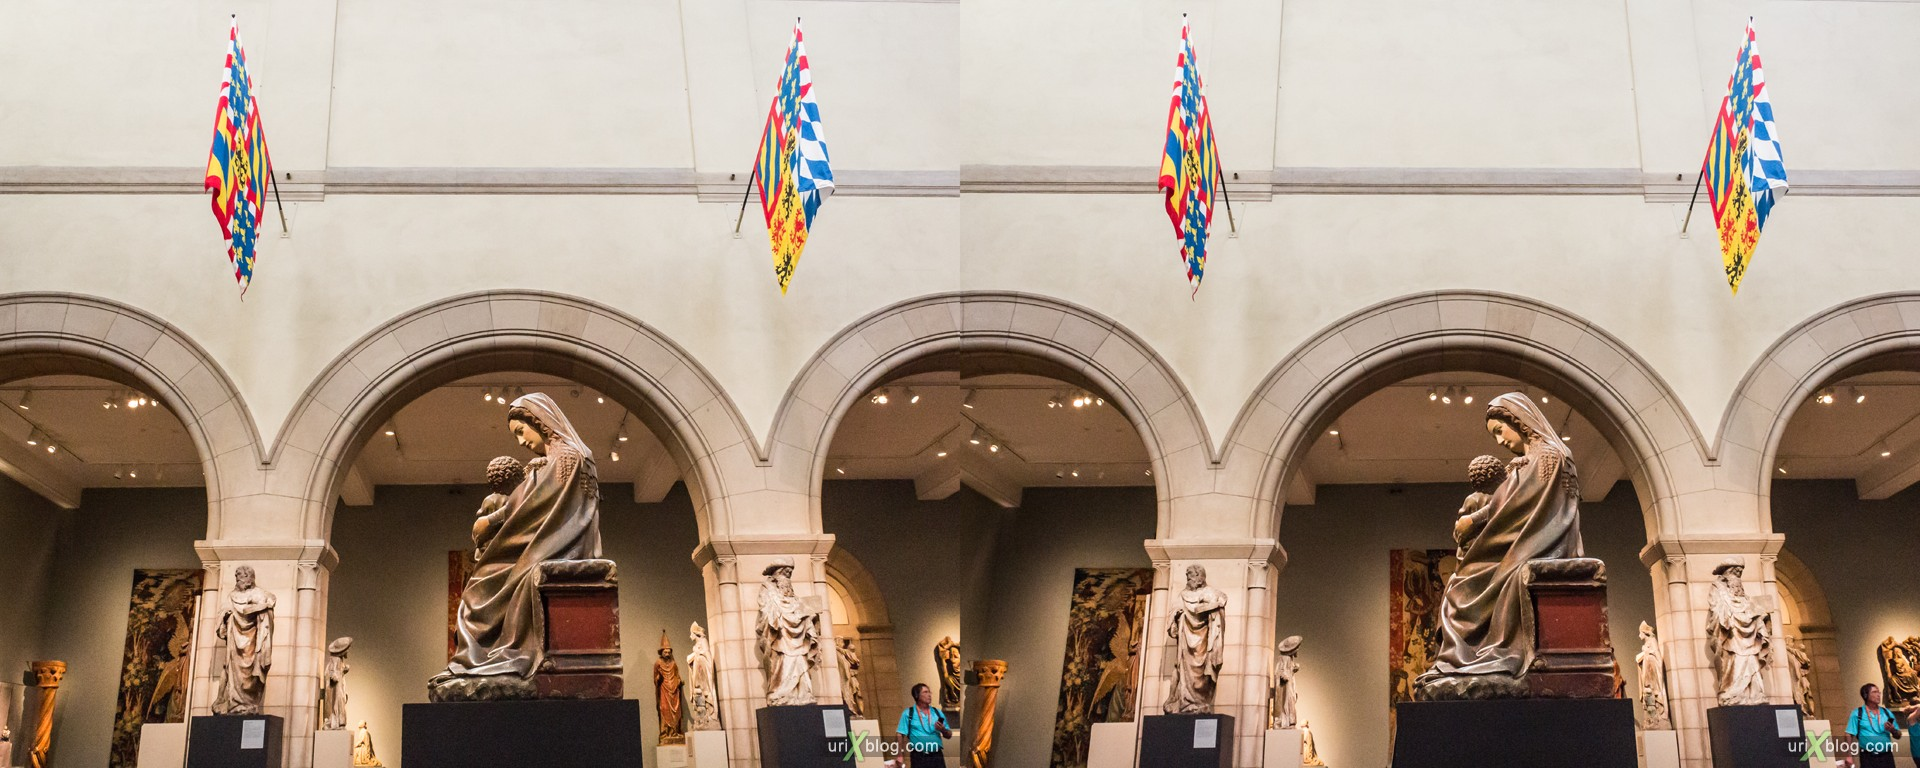 2013, Metropolitan Museum of Art, NYC, New York City, USA, 3D, stereo pair, cross-eyed, crossview, cross view stereo pair, stereoscopic